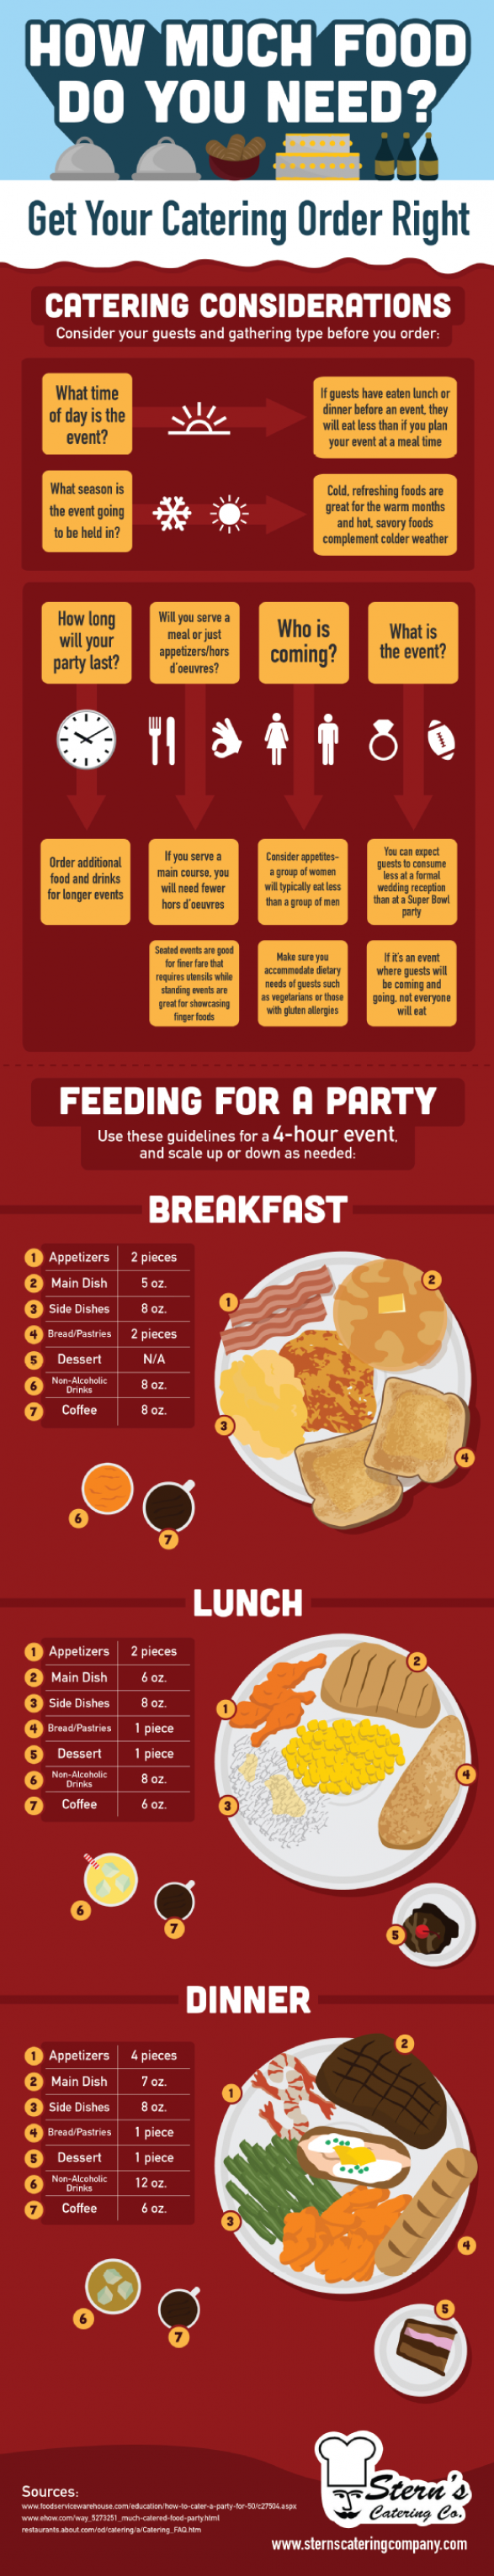 How Much Food Do You Need? Get Your Catering Order Right